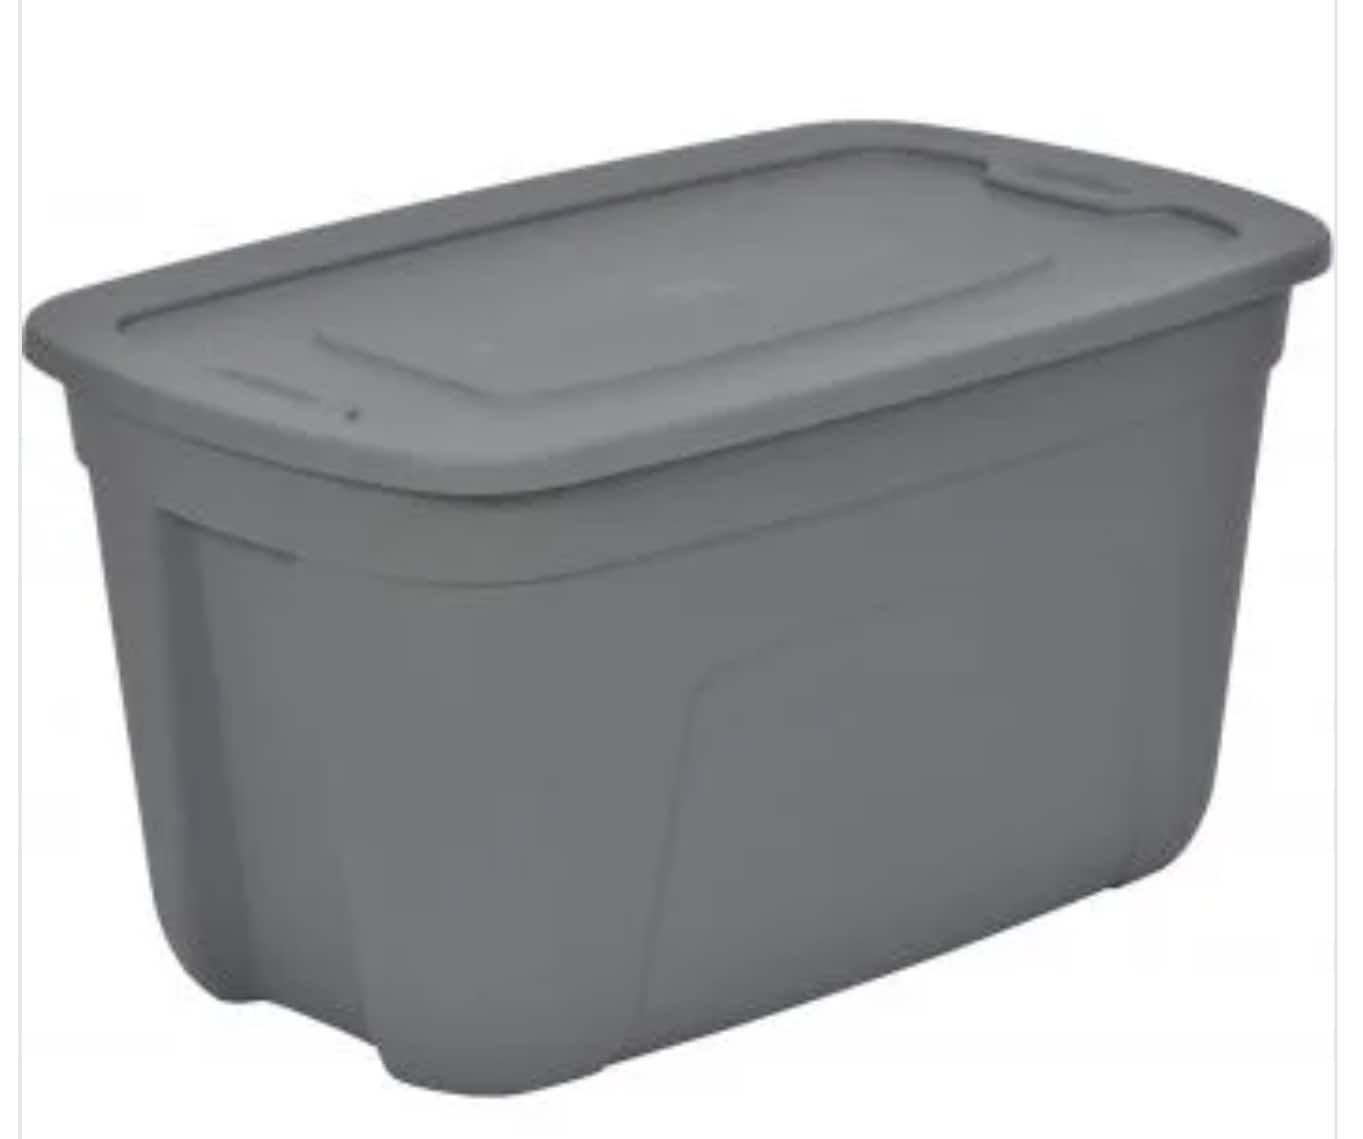 18/20 gallon totes for $2.99 @ Rural King